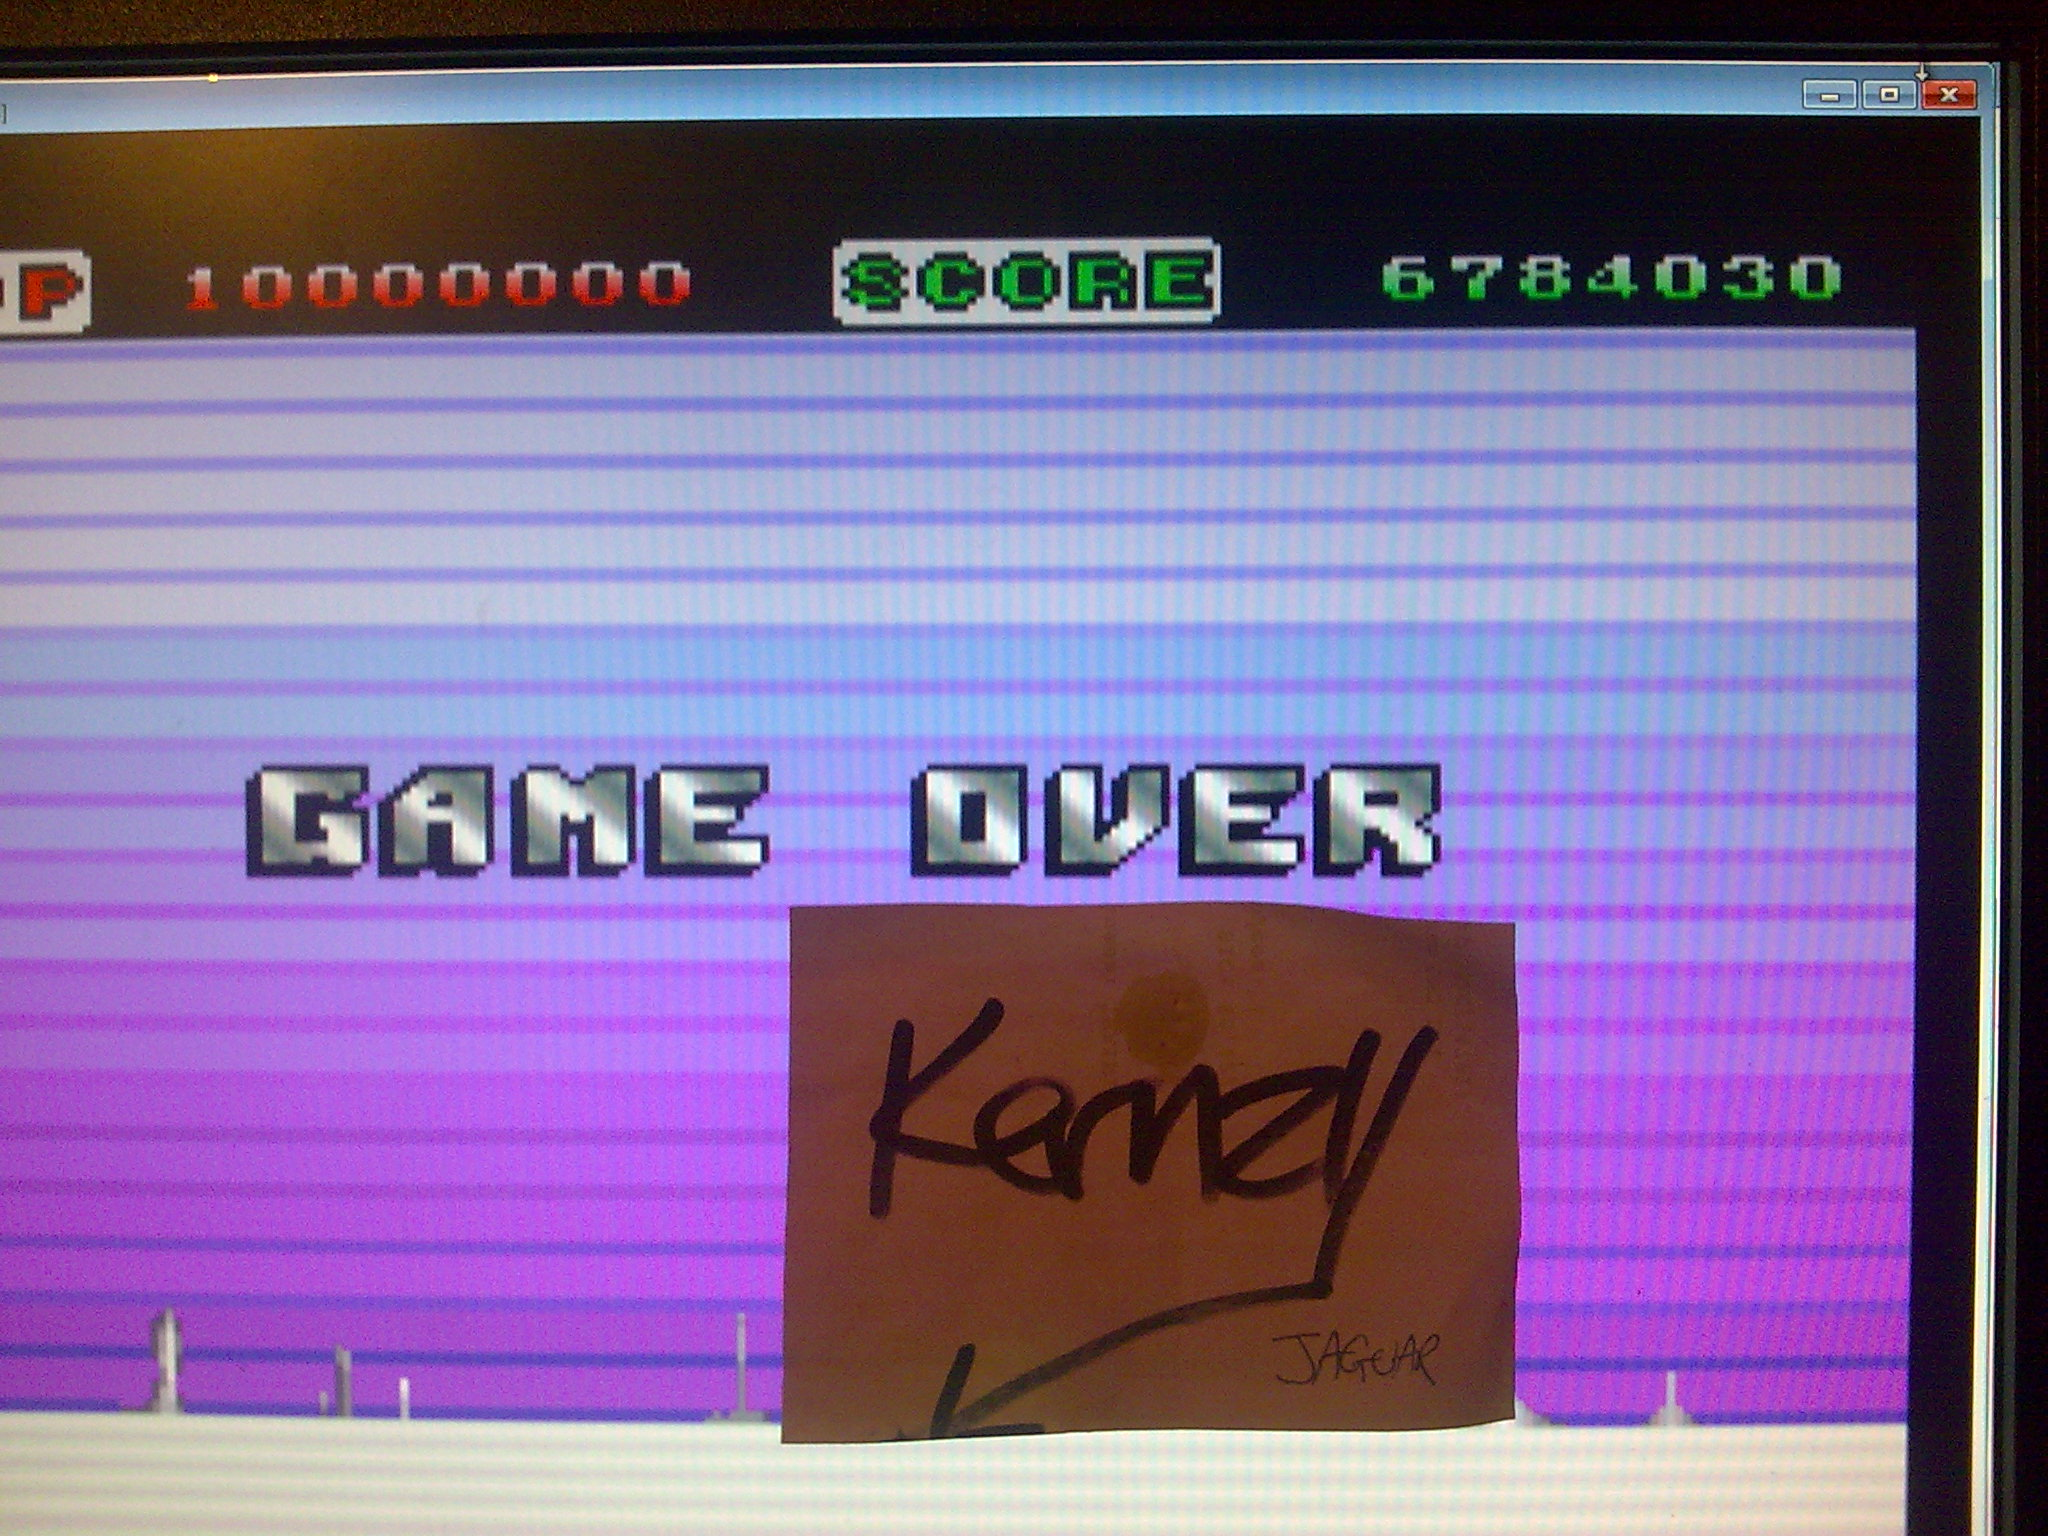 kernzy: Space Harrier (TurboGrafx-16/PC Engine Emulated) 6,784,030 points on 2014-10-11 11:05:55